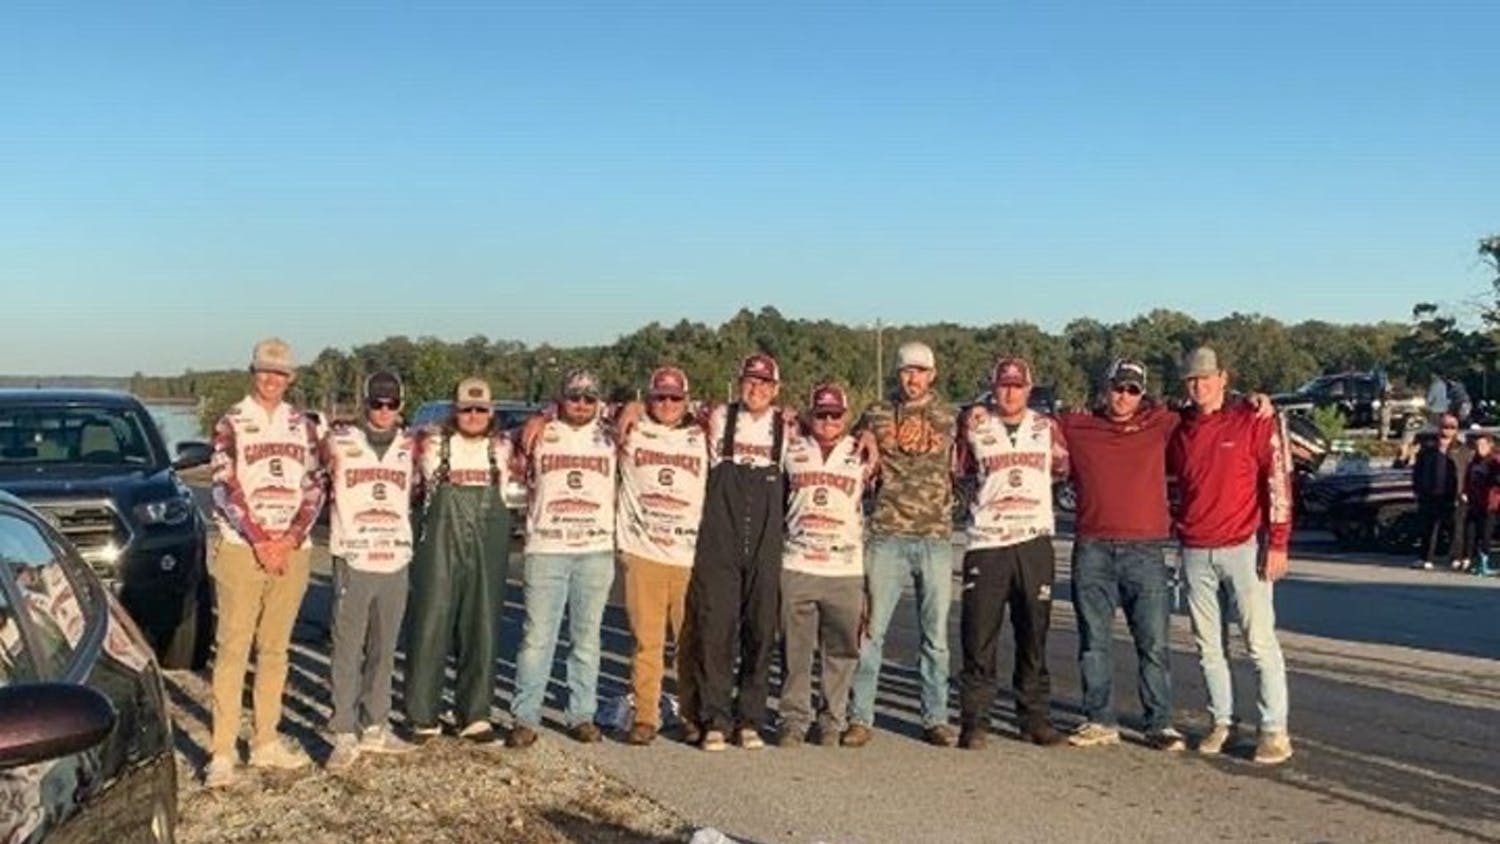 The USC Anglers team poses for a group photo.